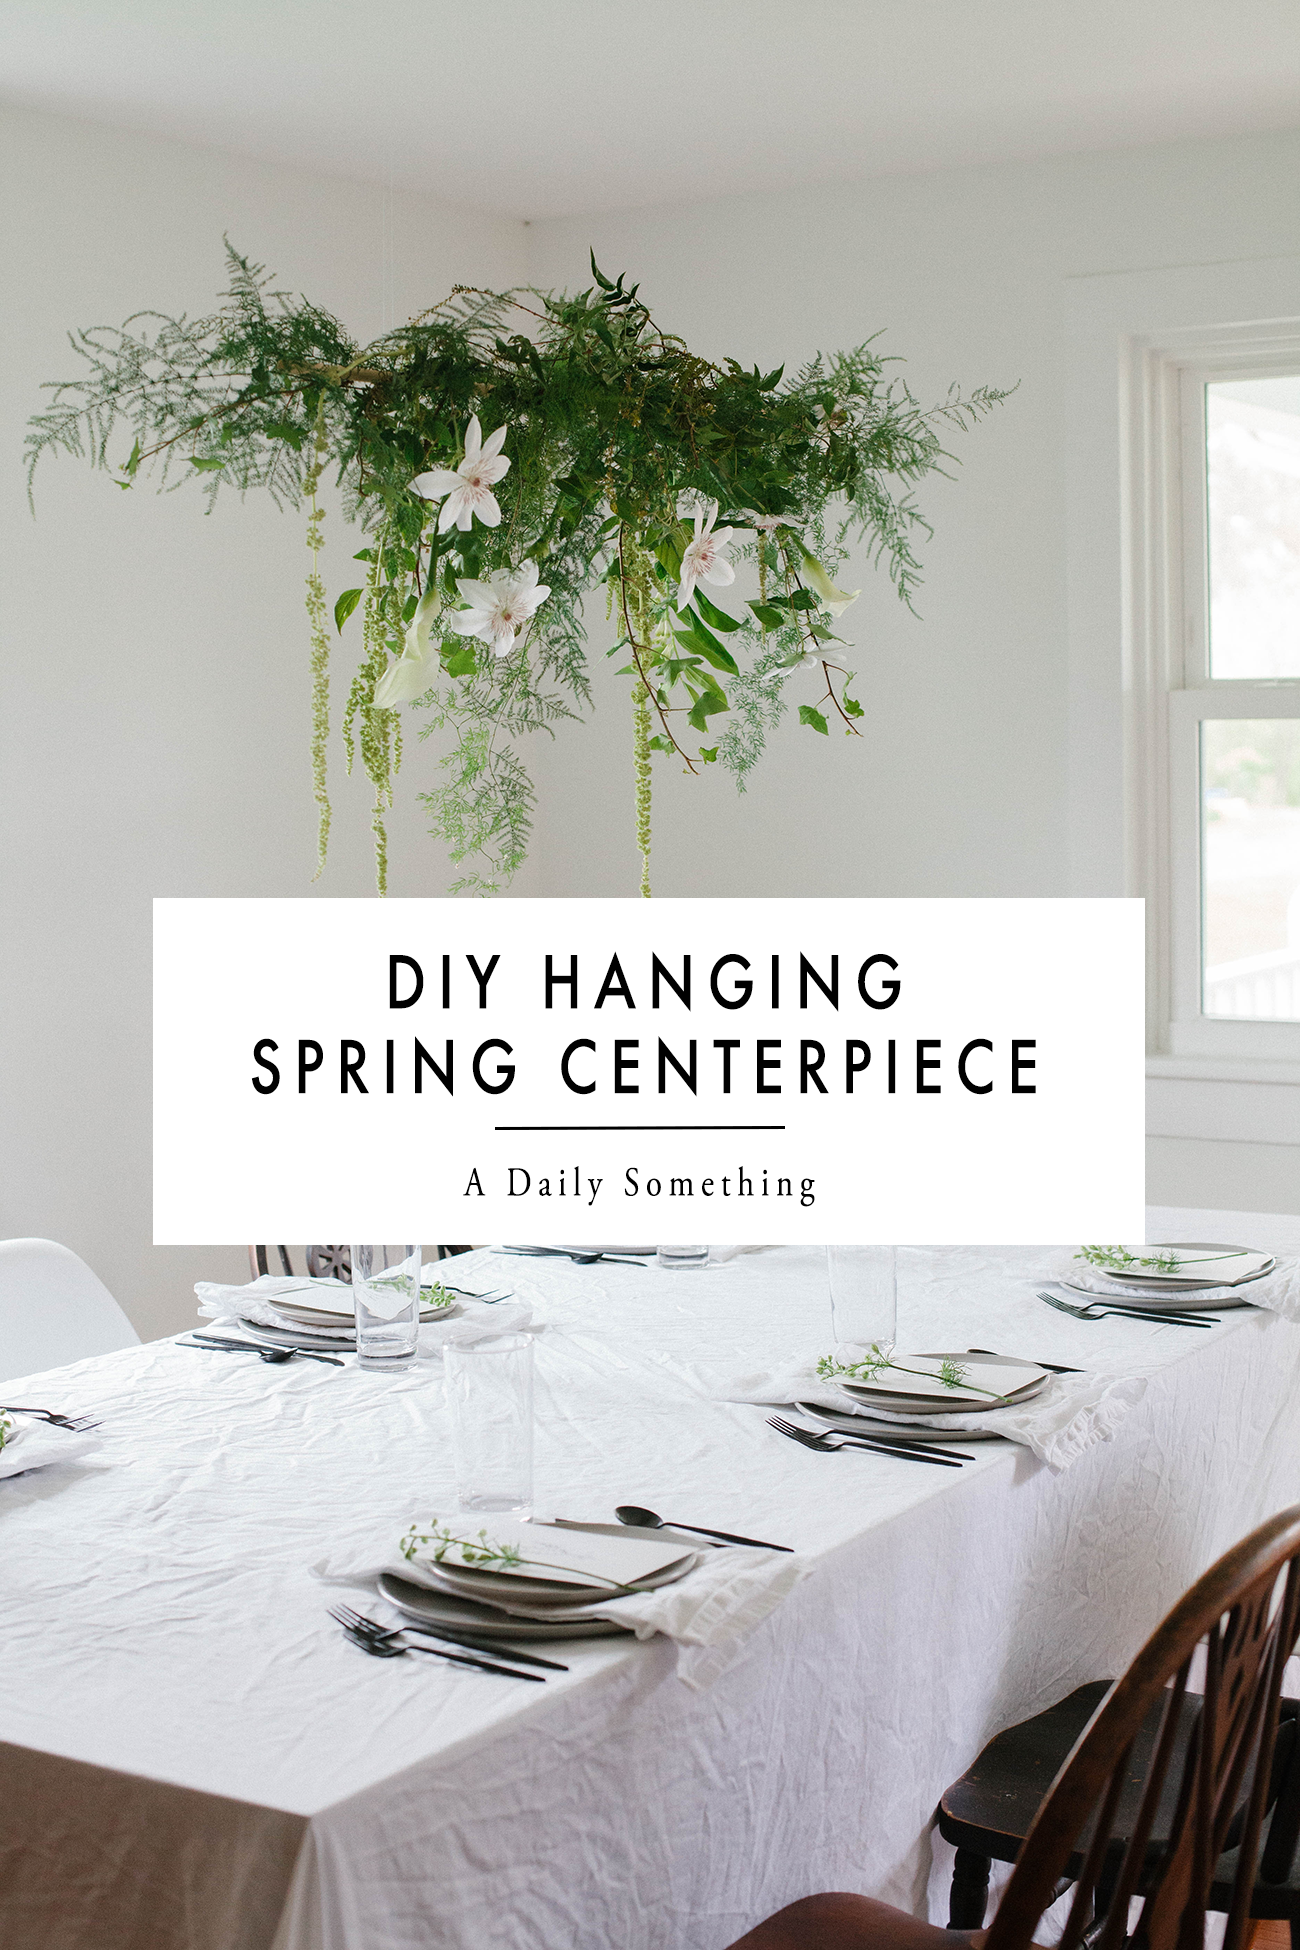 Diy Hanging Centerpiece With Greens Spring Flowers A Daily Something Hanging Centerpiece Hanging Flower Arrangements Hanging Flowers Wedding